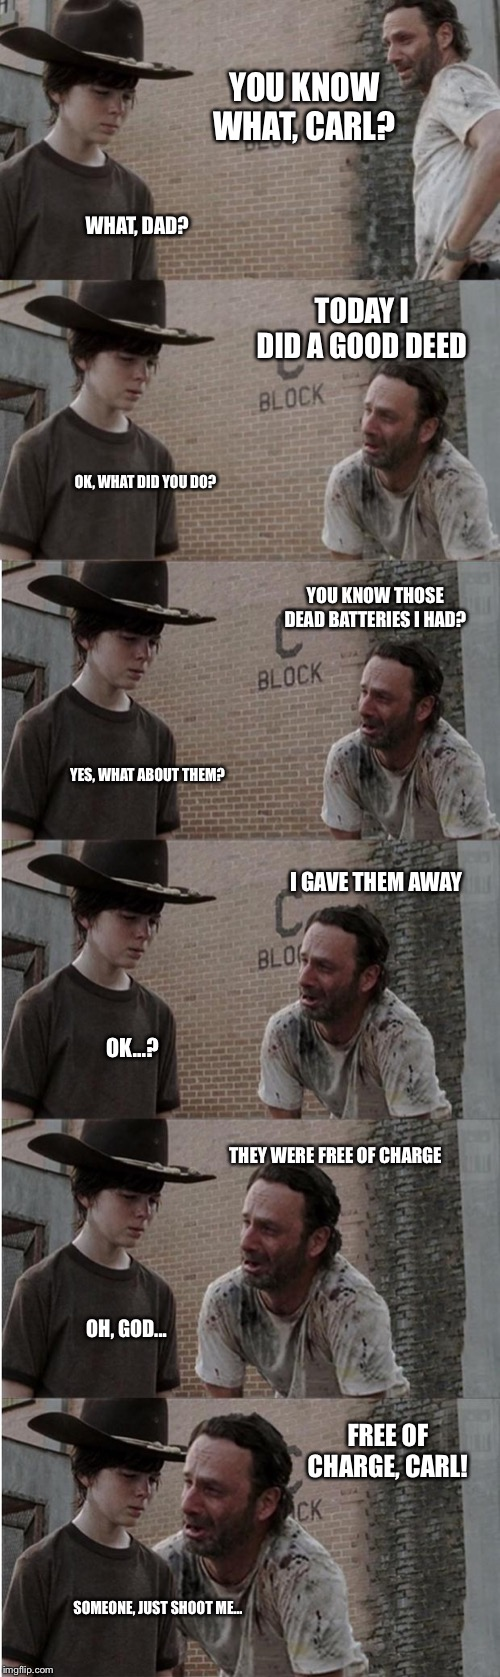 Dad joke Rick | YOU KNOW WHAT, CARL? WHAT, DAD? TODAY I DID A GOOD DEED OK, WHAT DID YOU DO? YOU KNOW THOSE DEAD BATTERIES I HAD? YES, WHAT ABOUT THEM? I GA | image tagged in memes,rick and carl longer,dad joke | made w/ Imgflip meme maker